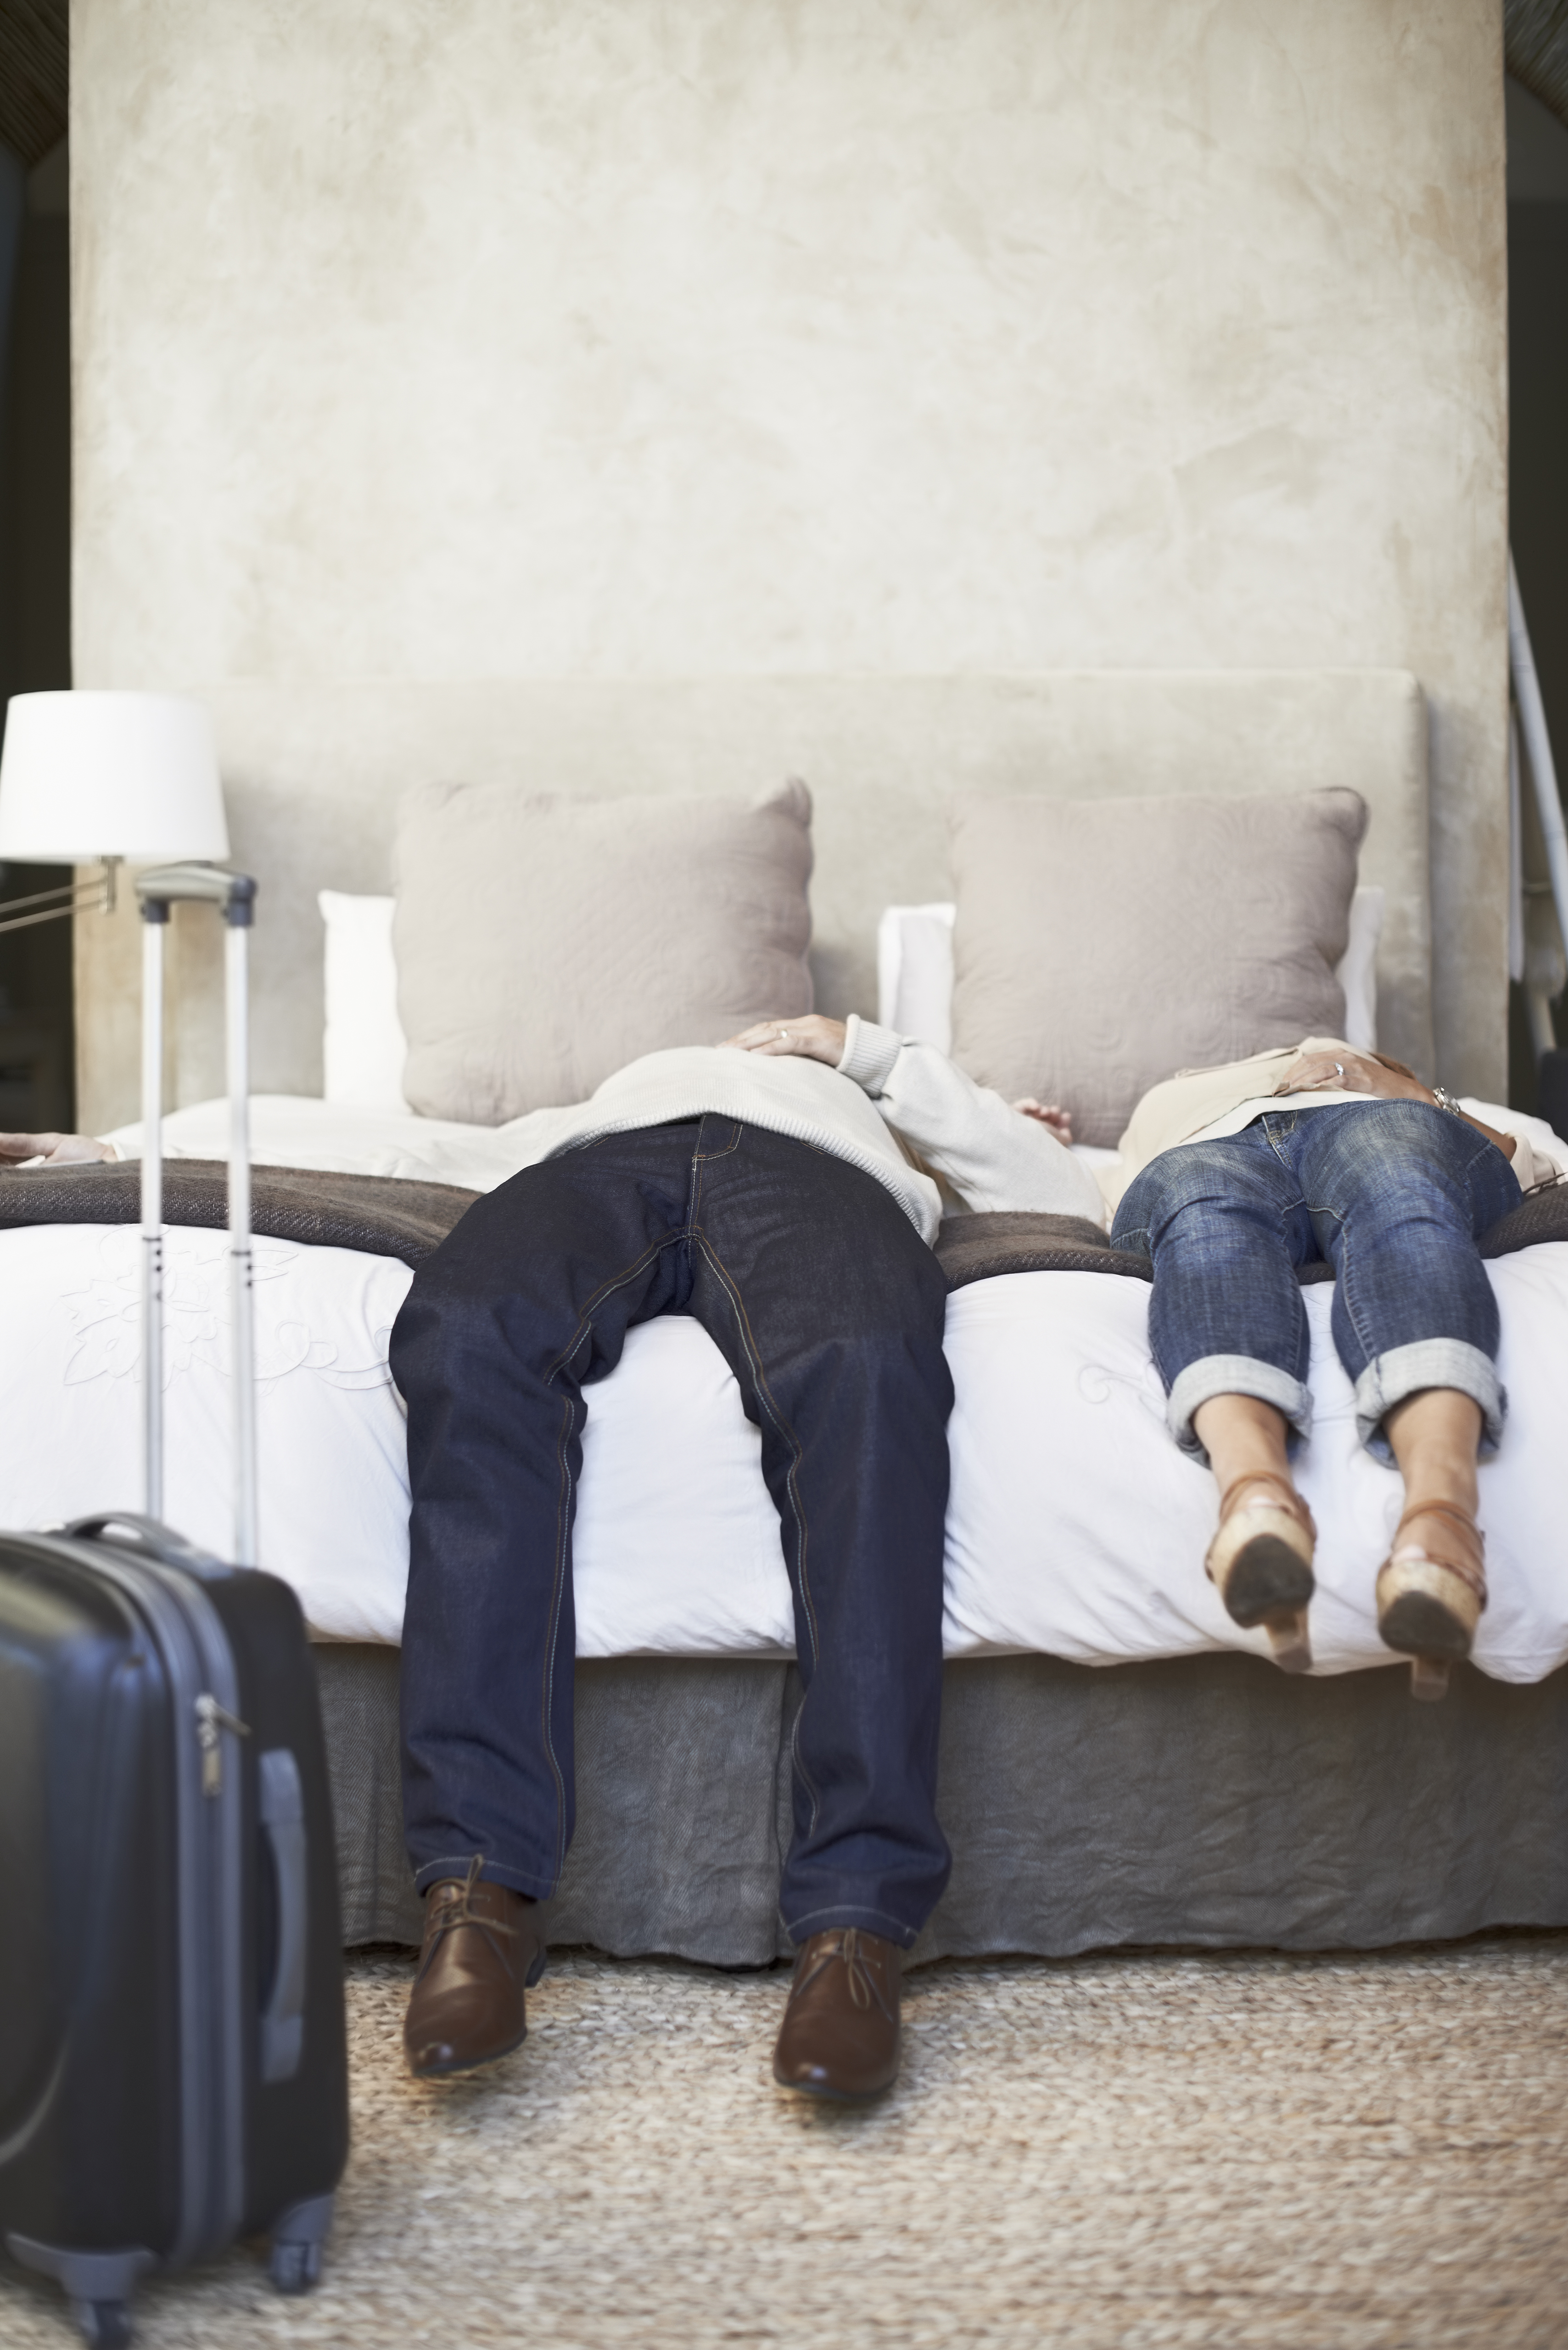 New app helps weary travelers find short-term accomodation